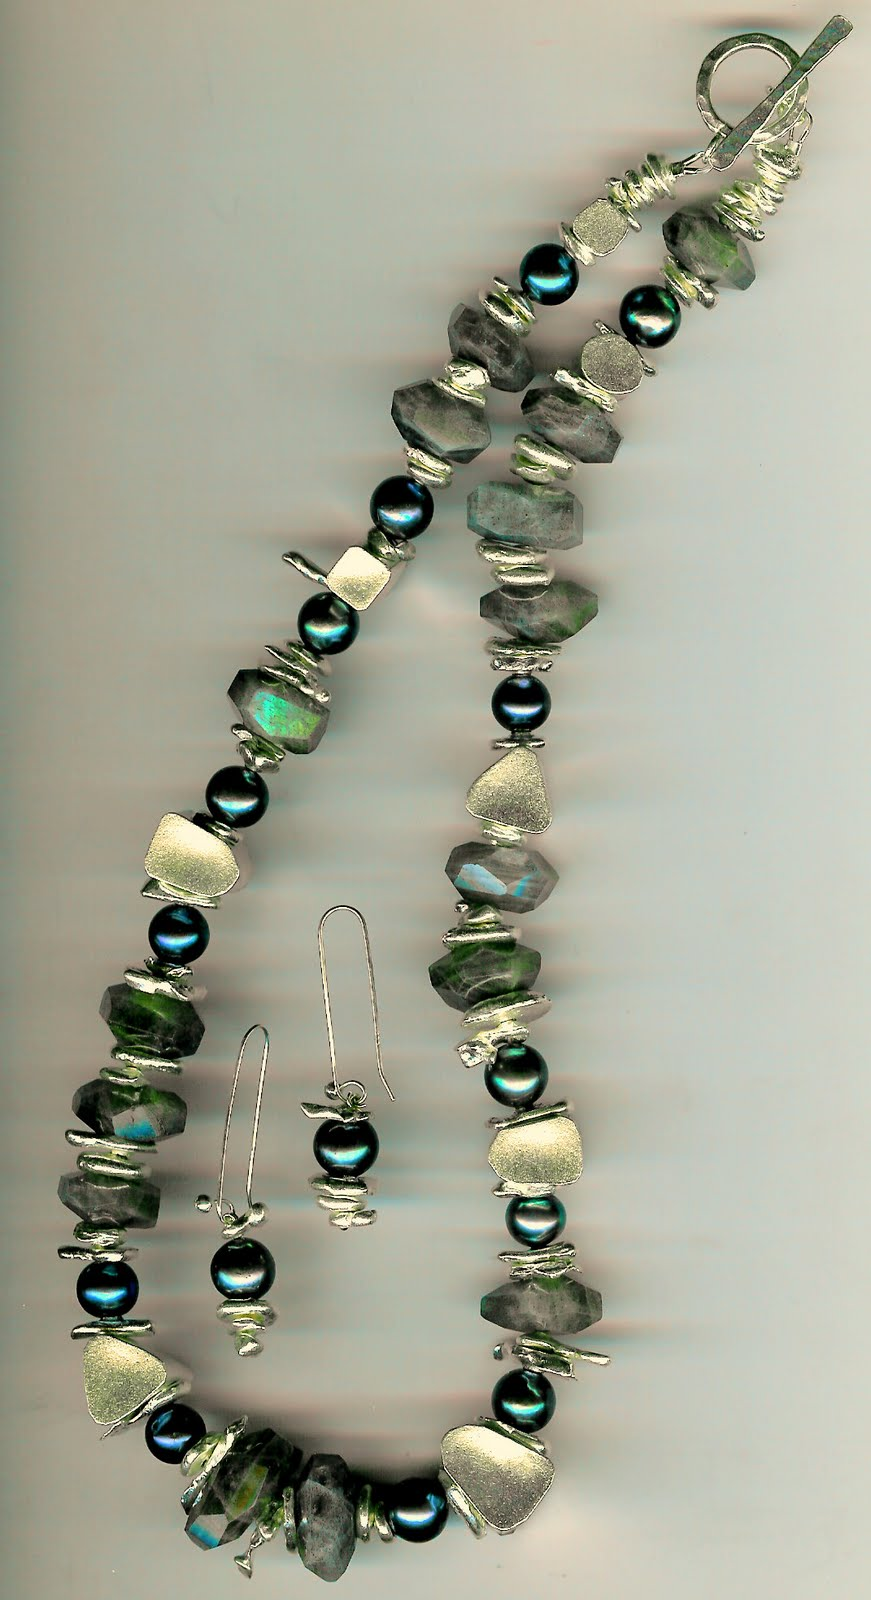 220. Labradorite, Akoya Pearls and Thai Sterling Silver